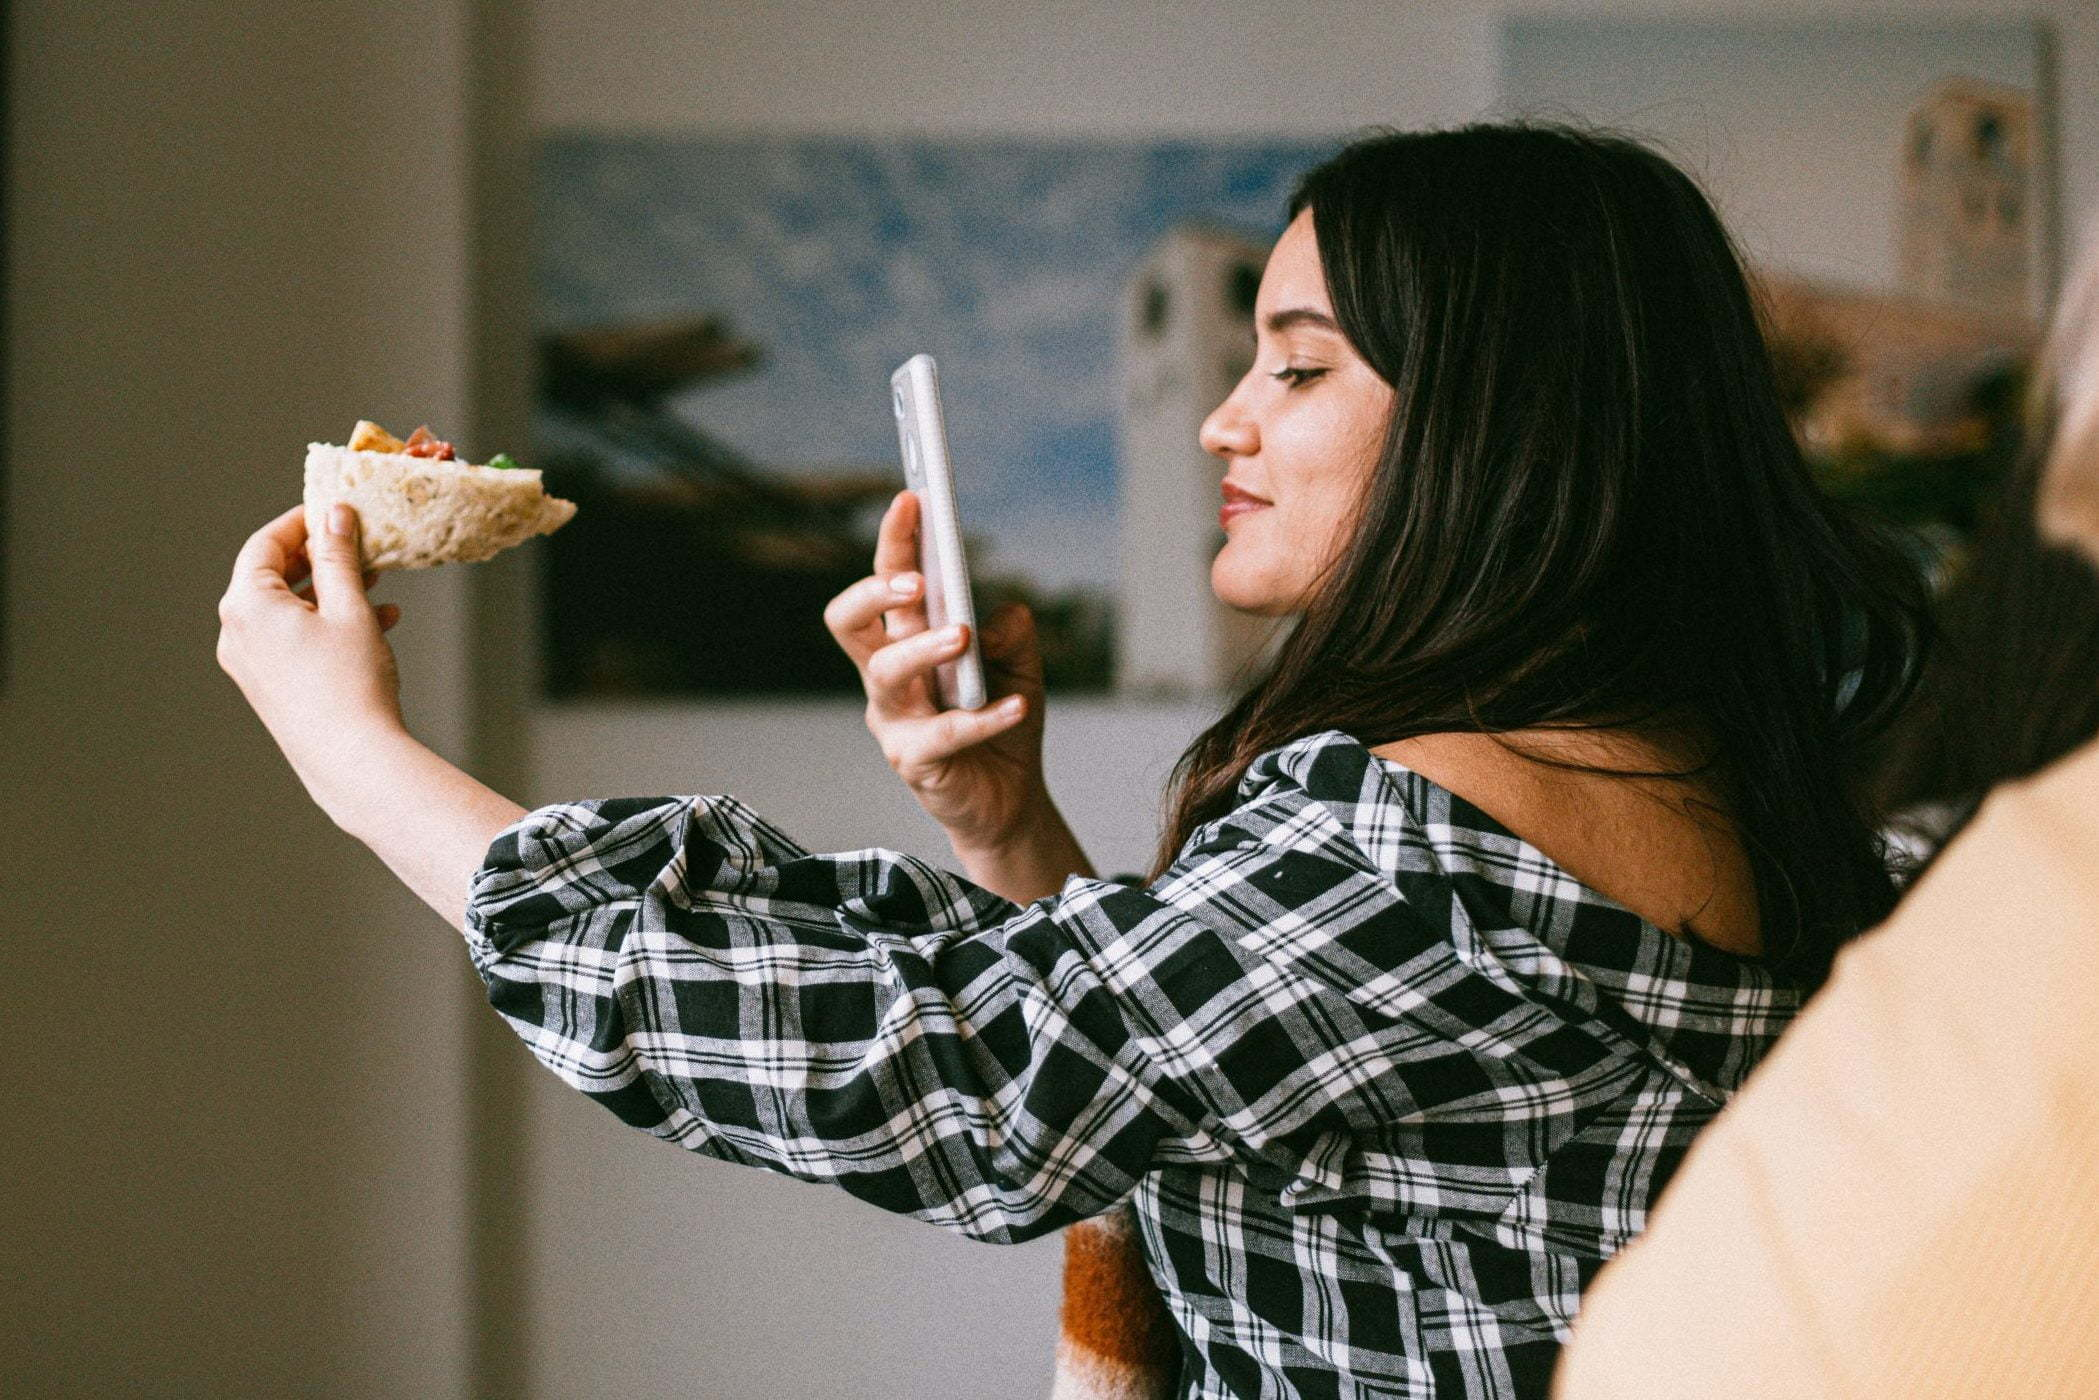 influencer taking food picture